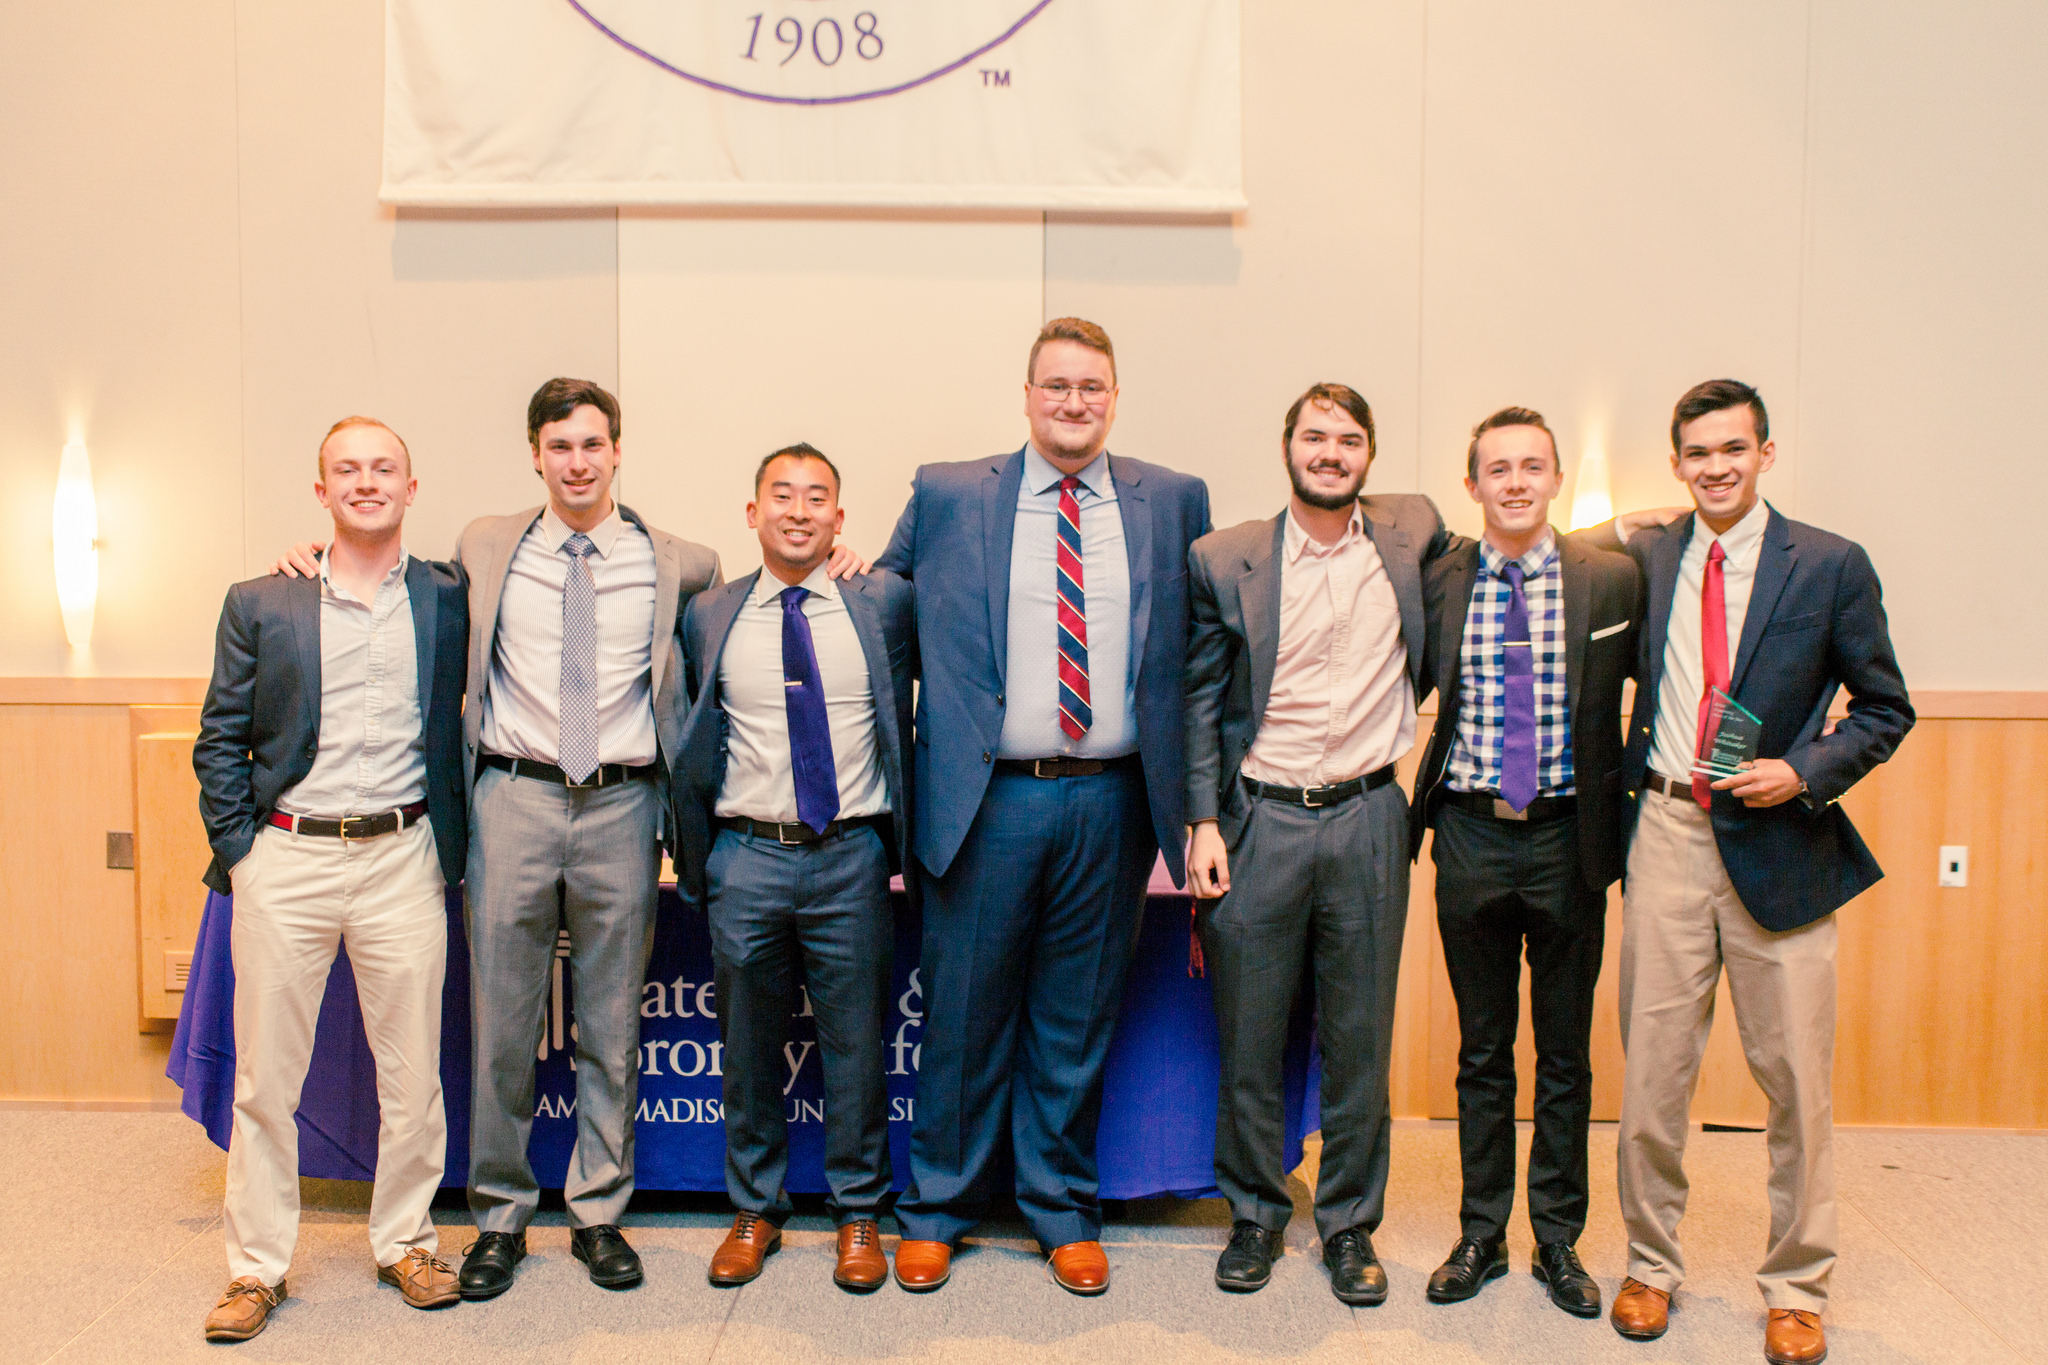 Delta Tau Delta members at Excellence Awards 2016.